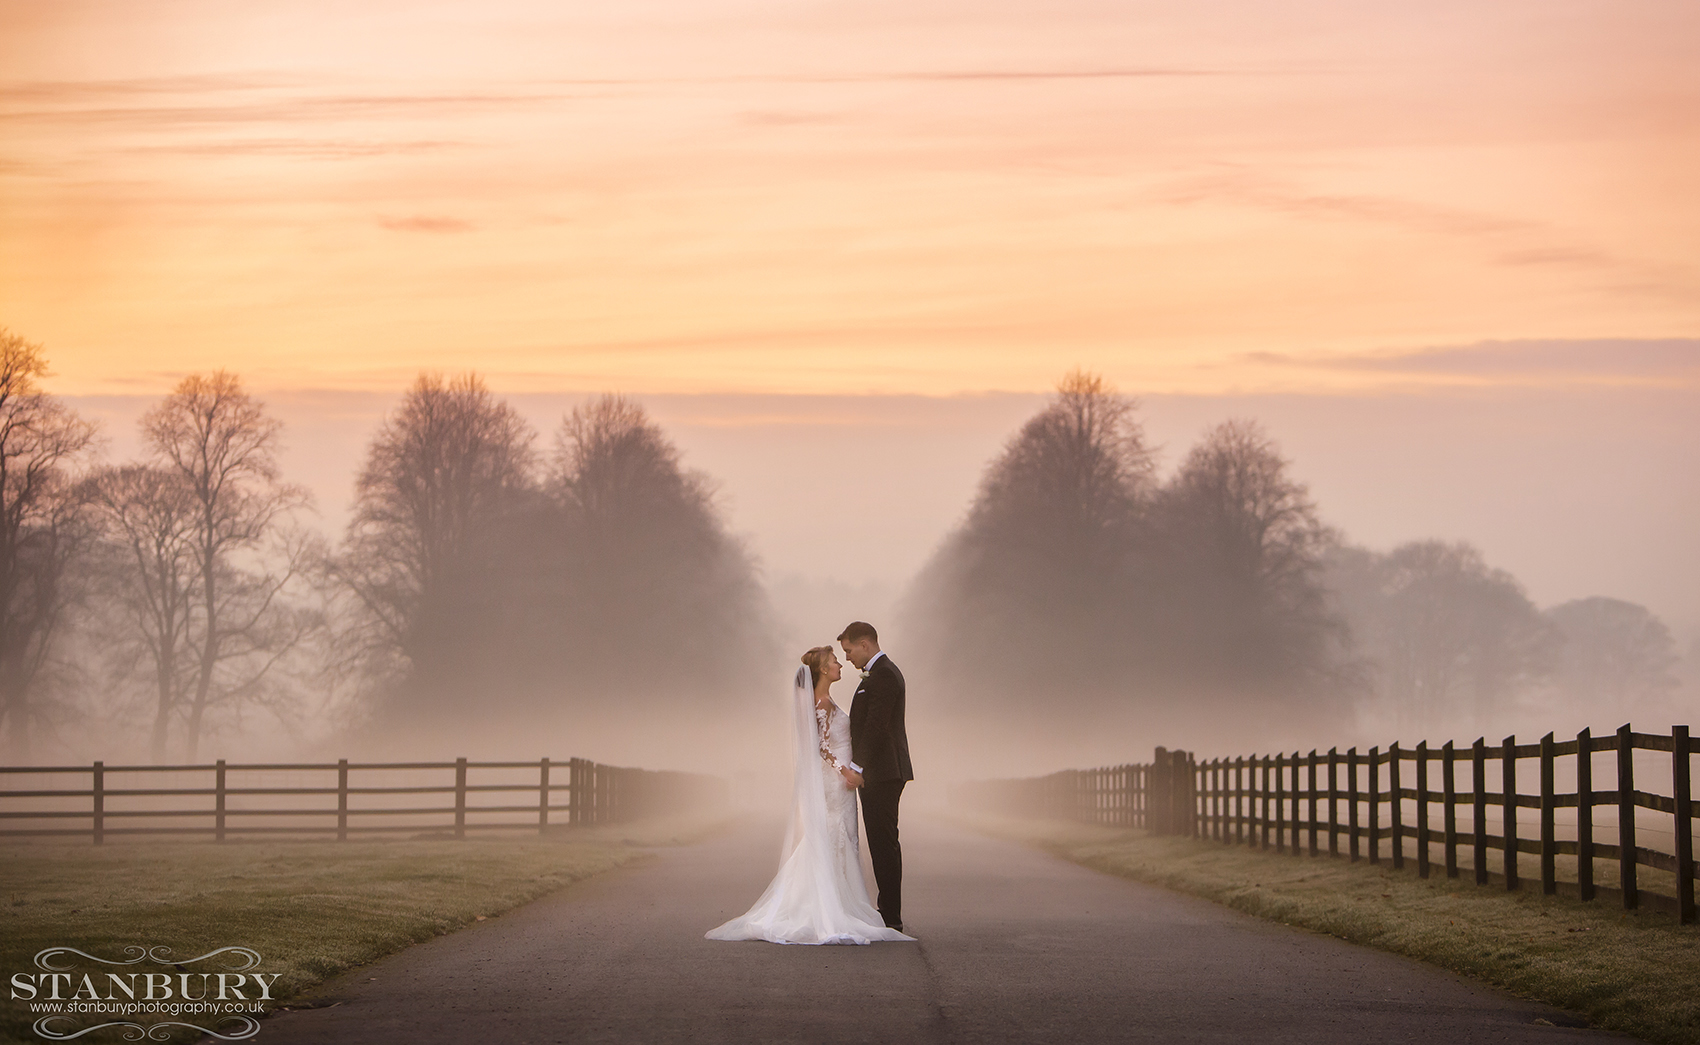 knowsley hall wedding photographer stanbury photography